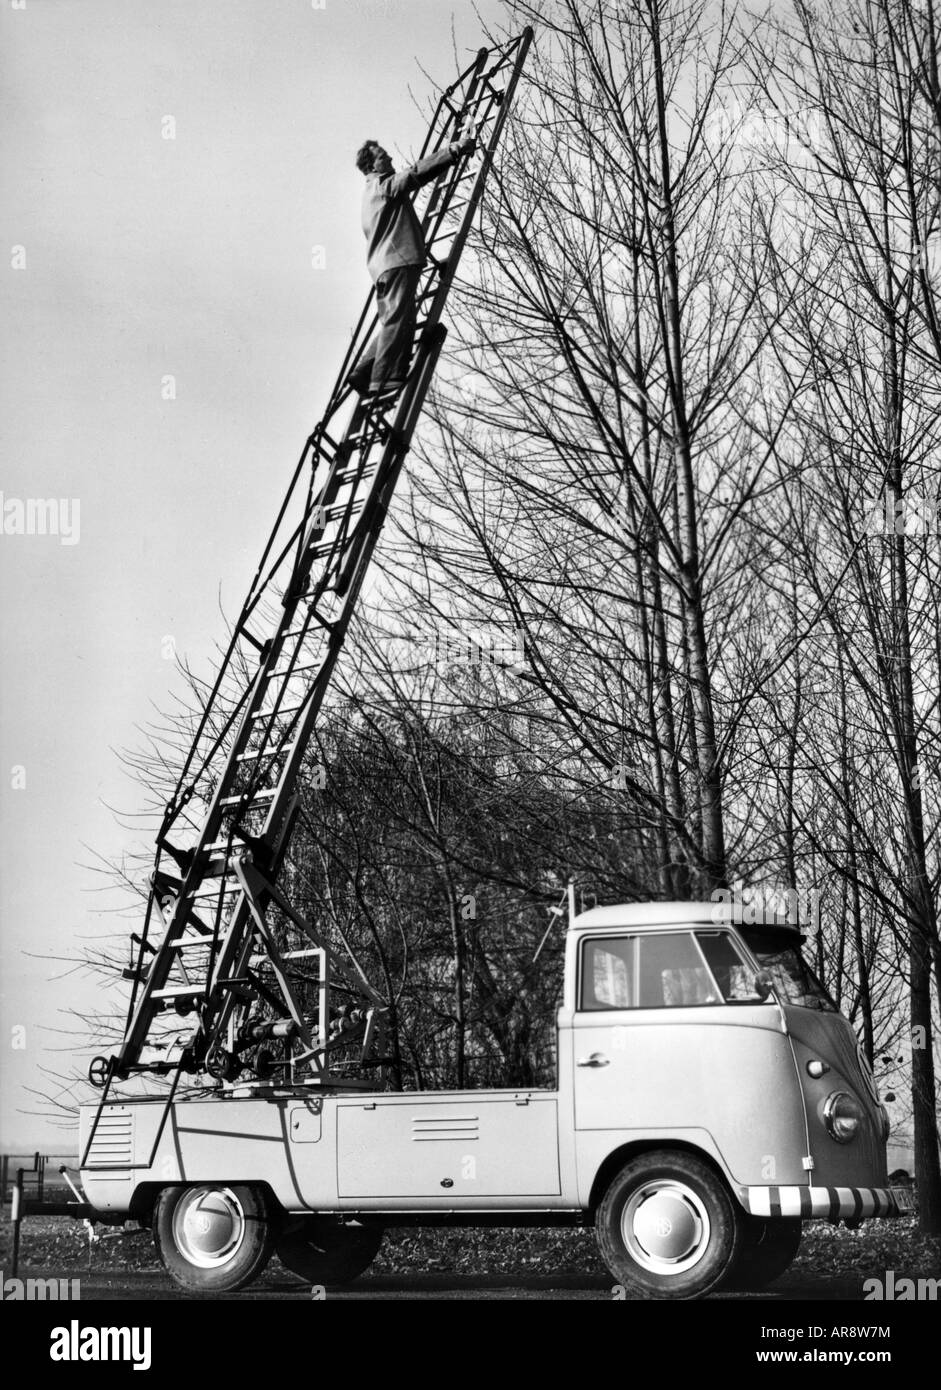 transport / transportation, car, vehicle variants, Volkswagen, VW Type 2, Additional-Rights-Clearances-NA - Stock Image